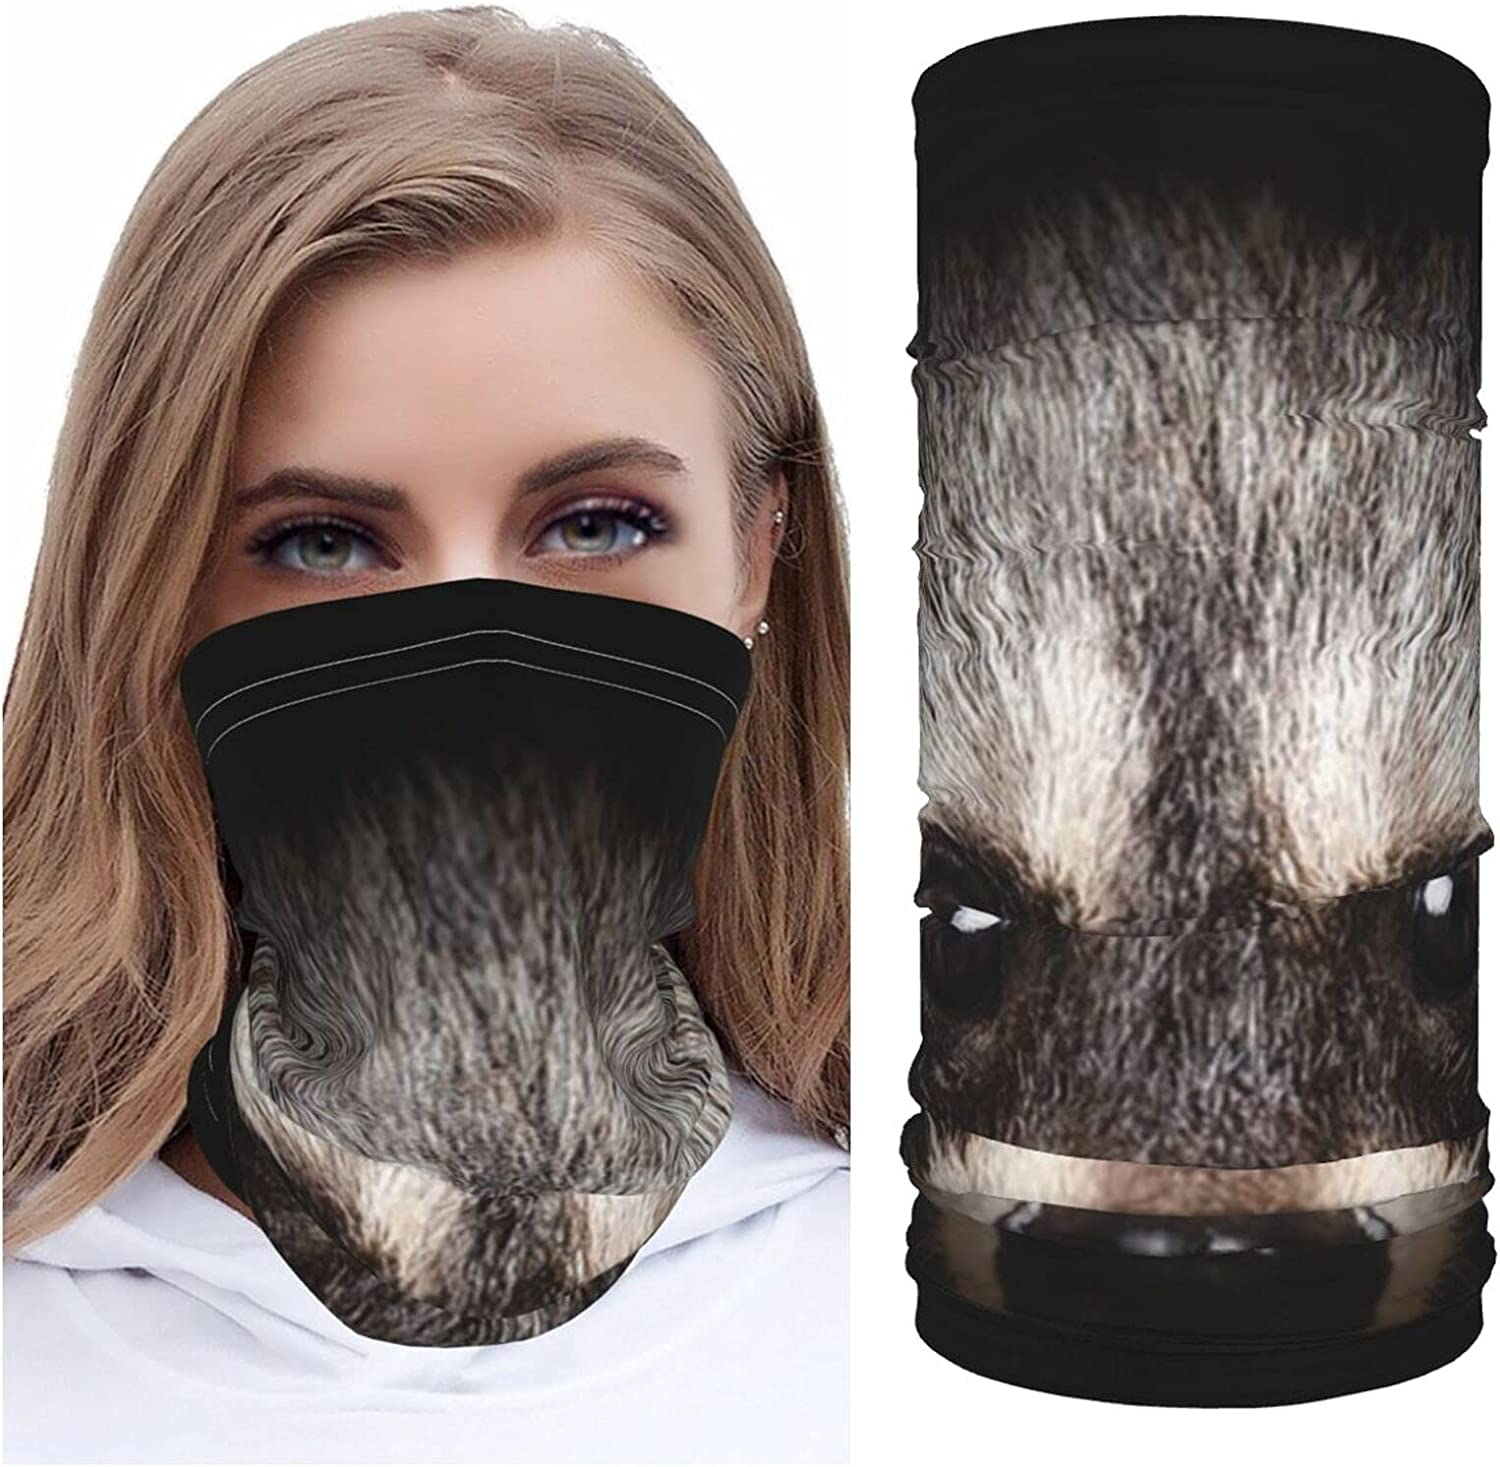 Portrait Cunning Raccoon Close Up Black Animal Wildlife Nature Summer Ice Silk Breathable Face Mask Neck Gaiter Scarf Bandanas for Fishing,Hiking,Running,Motorcycle and Daily Wear